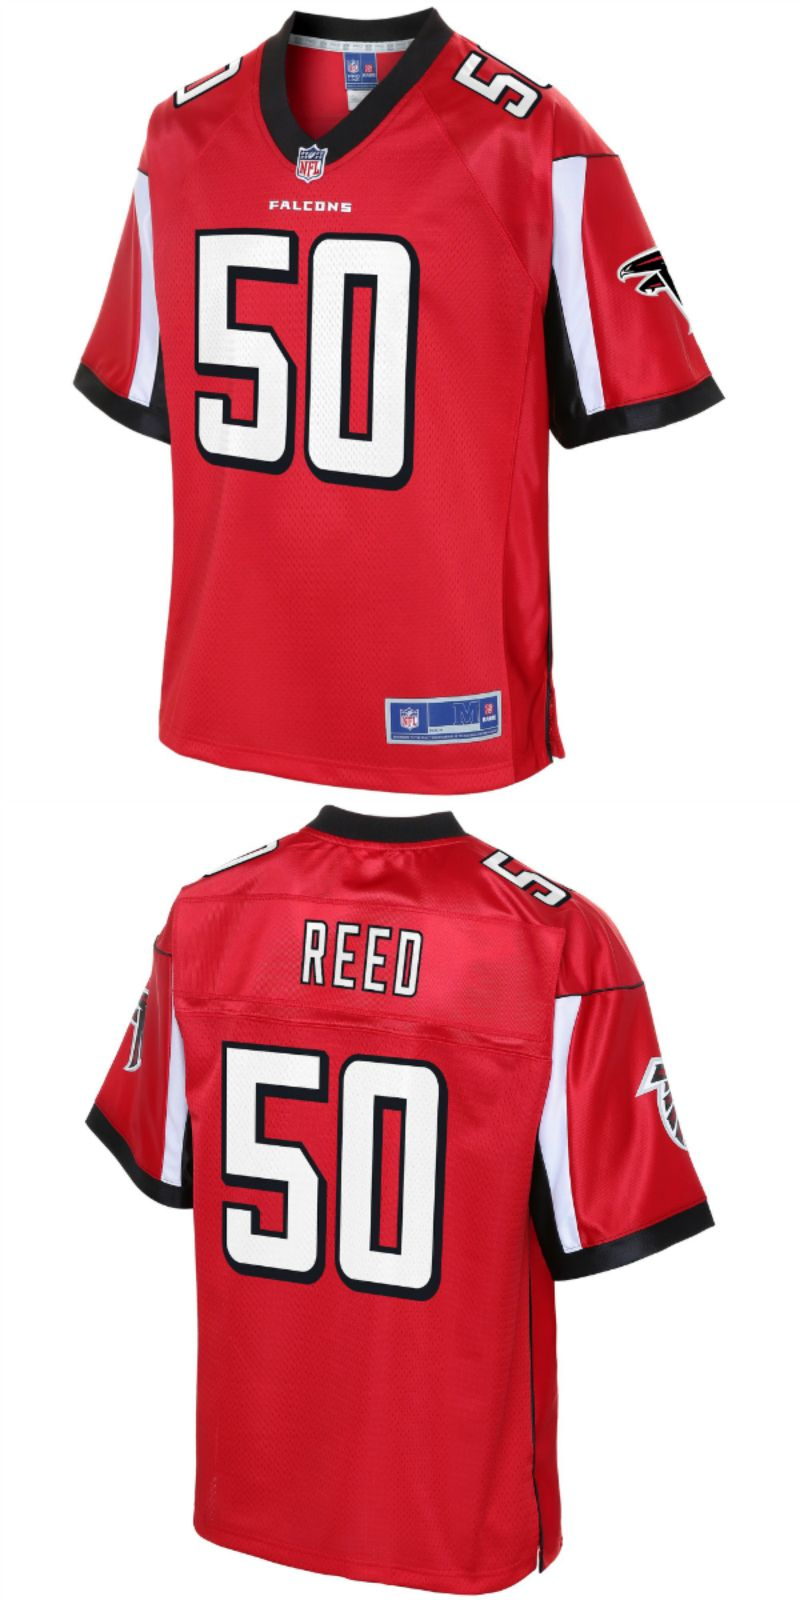 the best attitude bf174 ab9a6 Brooks Reed Atlanta Falcons NFL Pro Line Team Color Player ...